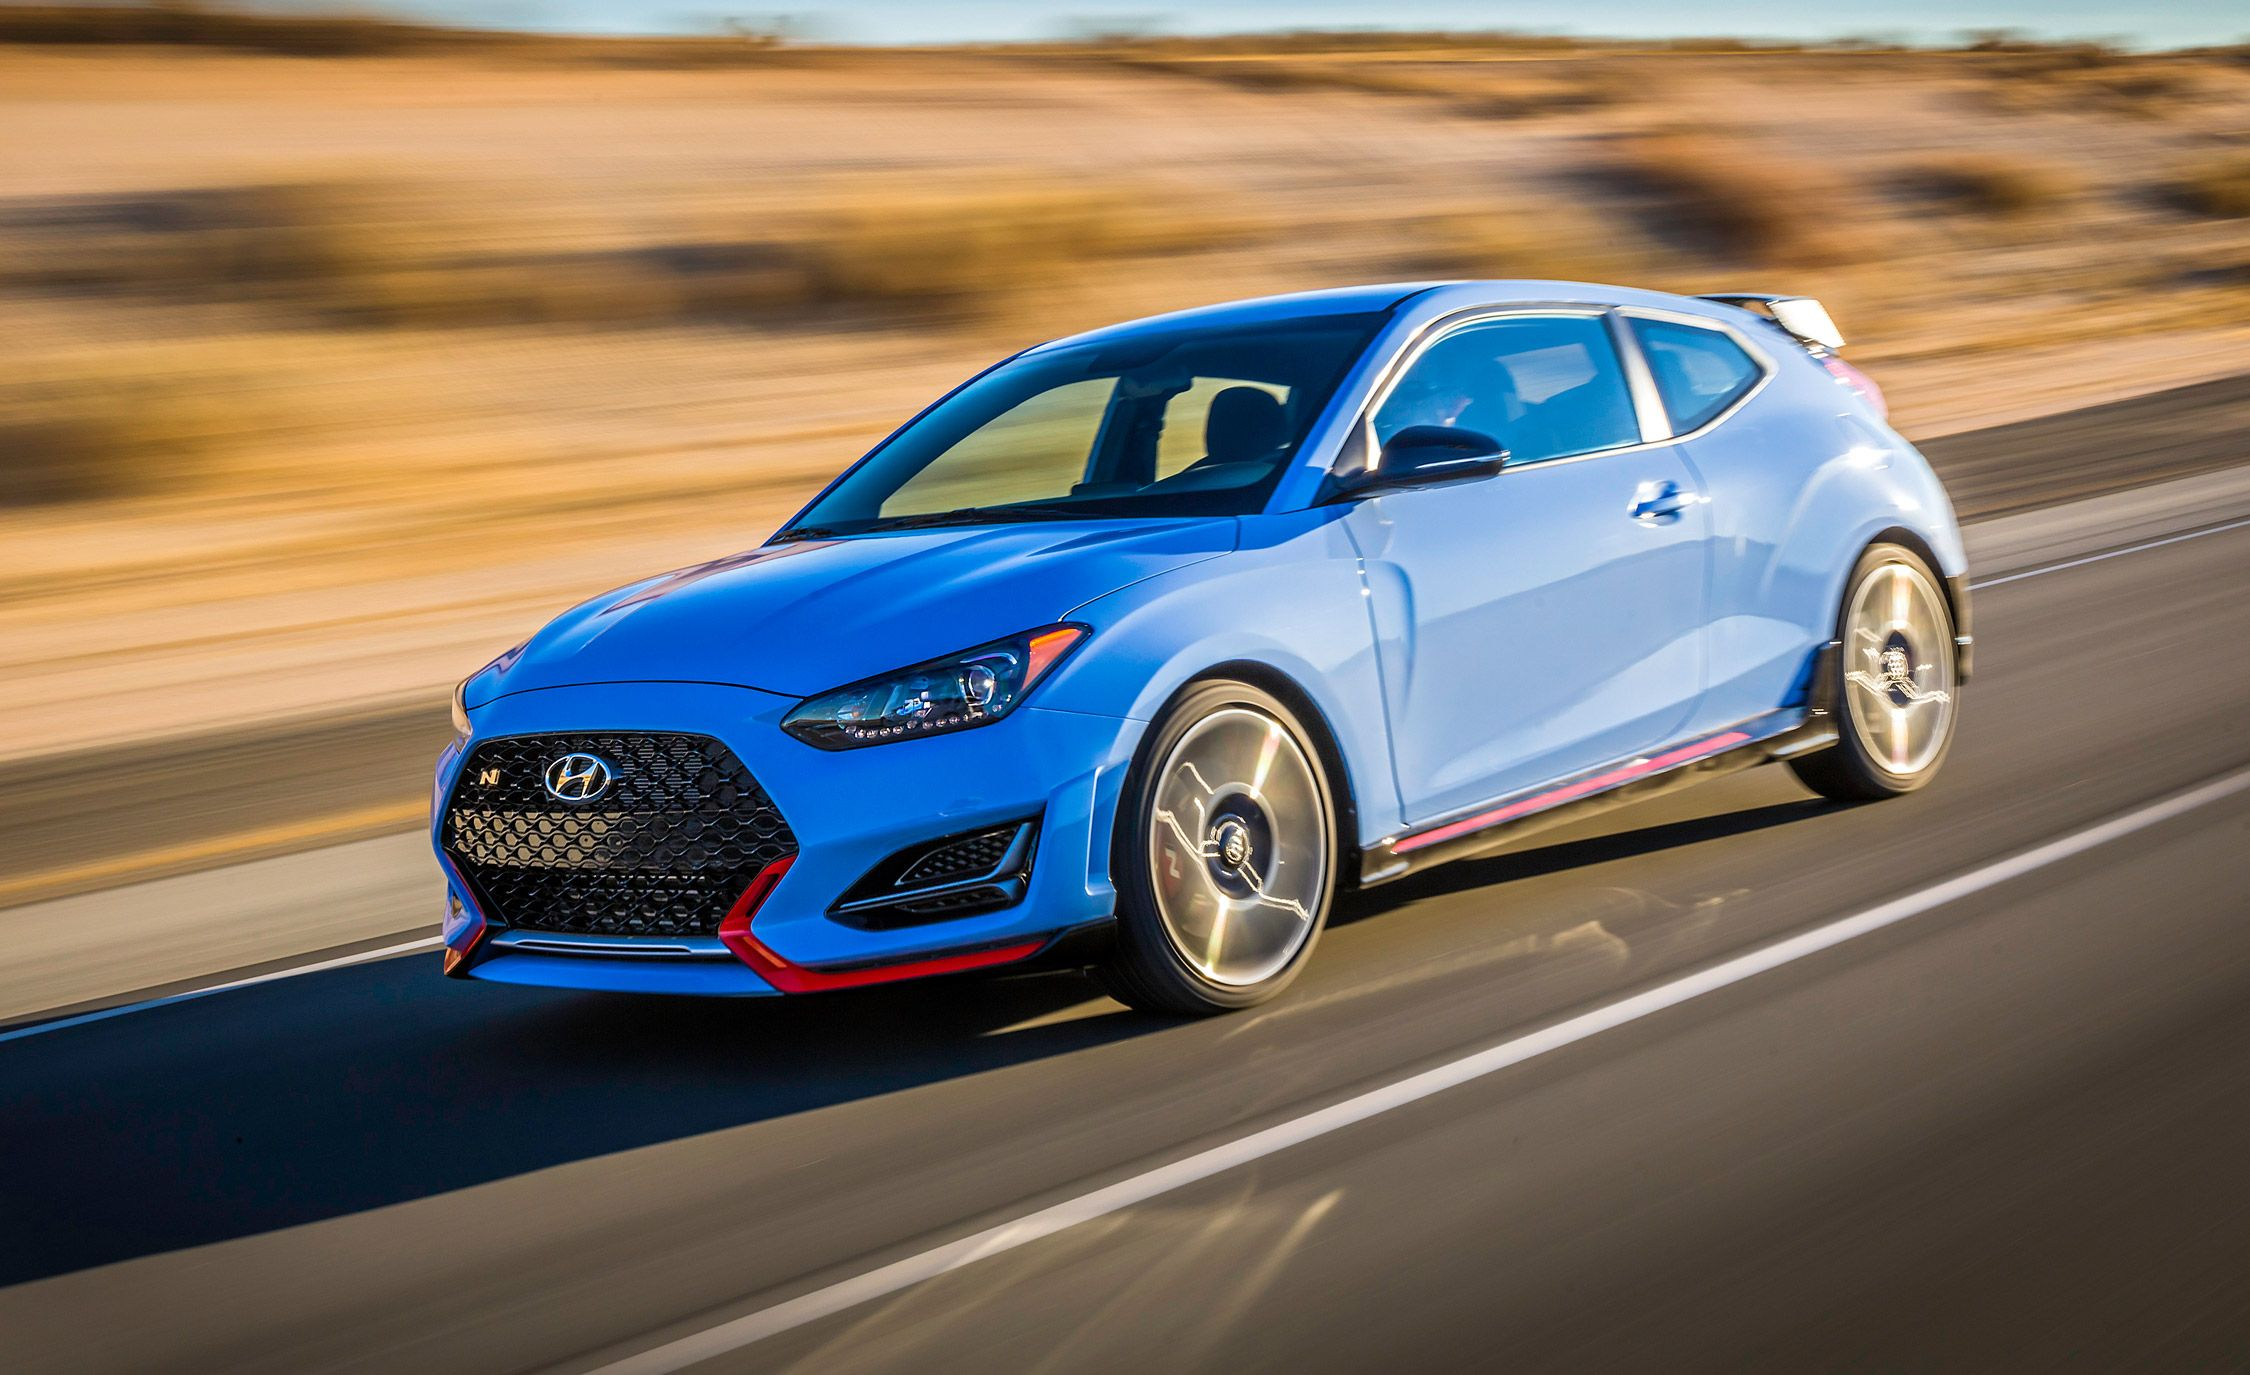 2019 Hyundai Veloster N With Up To 275 Hp It Could Be Something